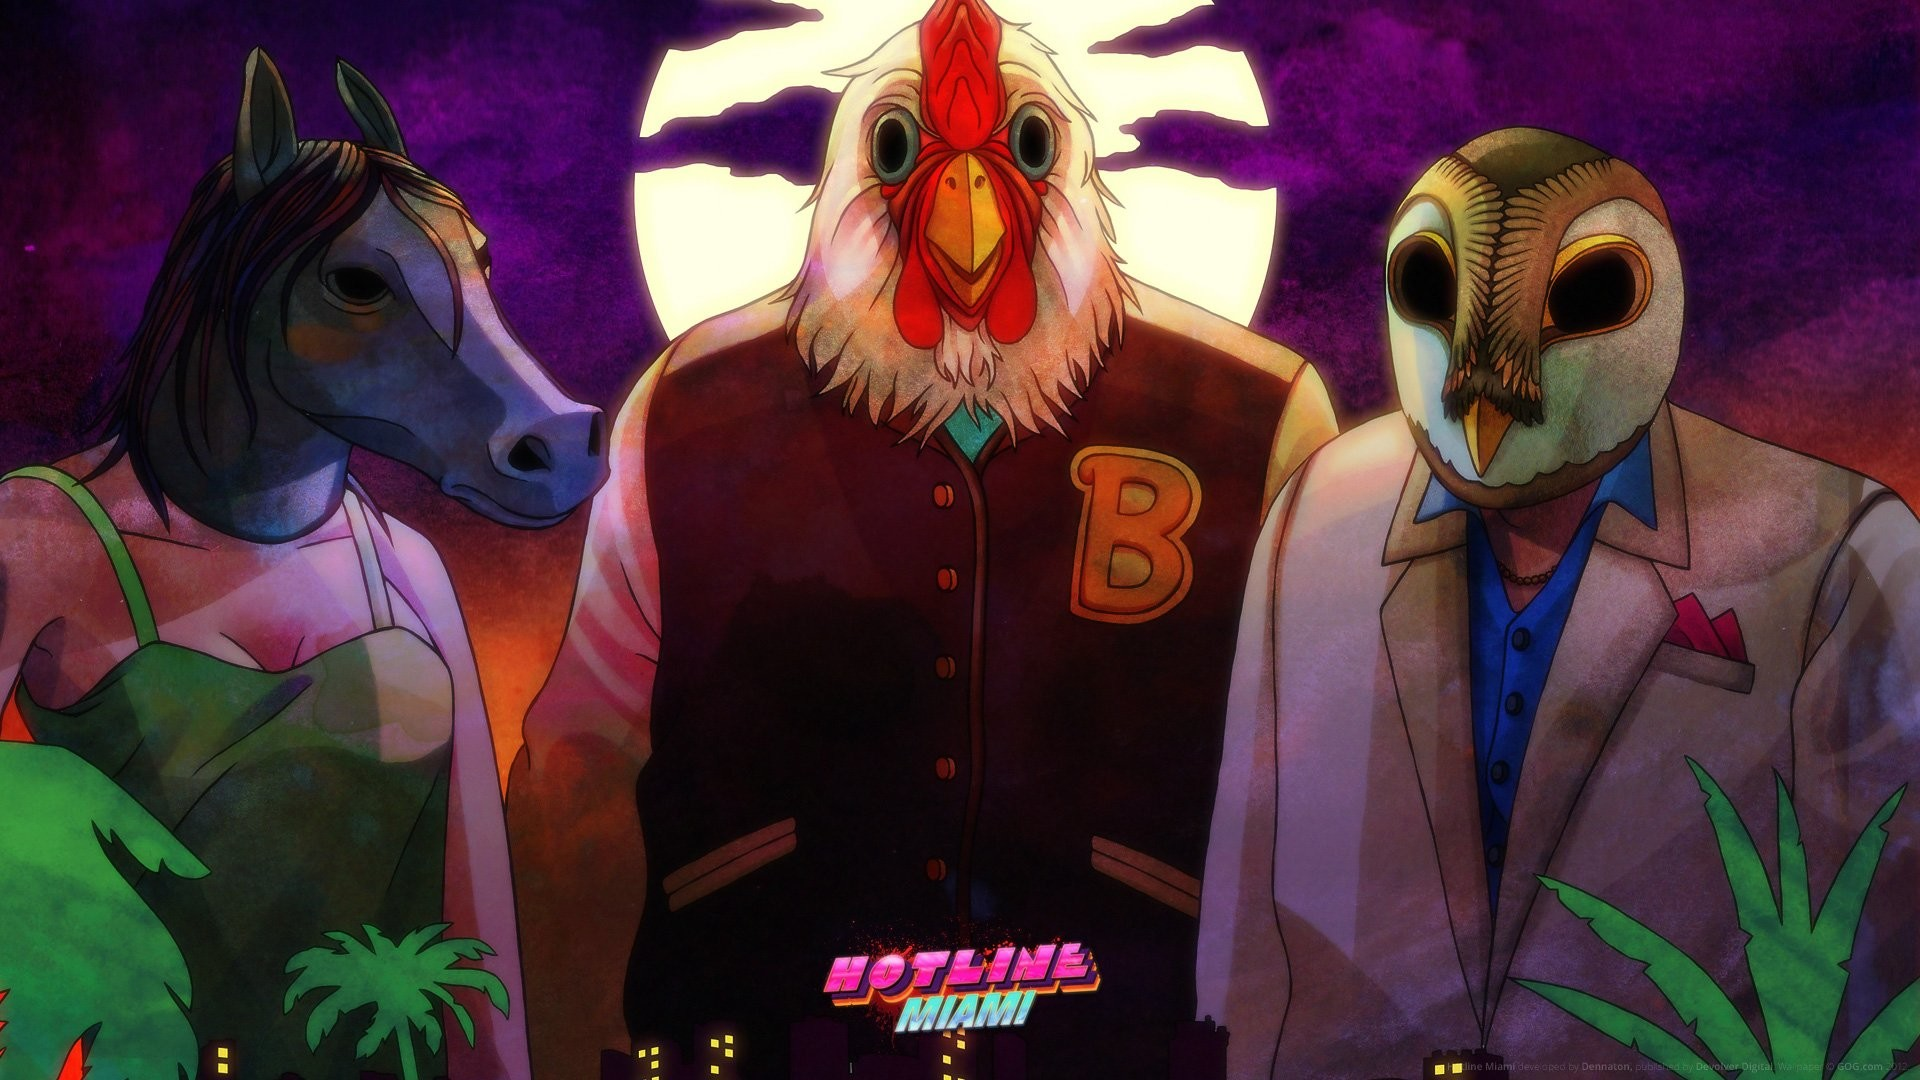 'Hotline Miami' takes players on an acid trip into a realm of depravity  Indie Express